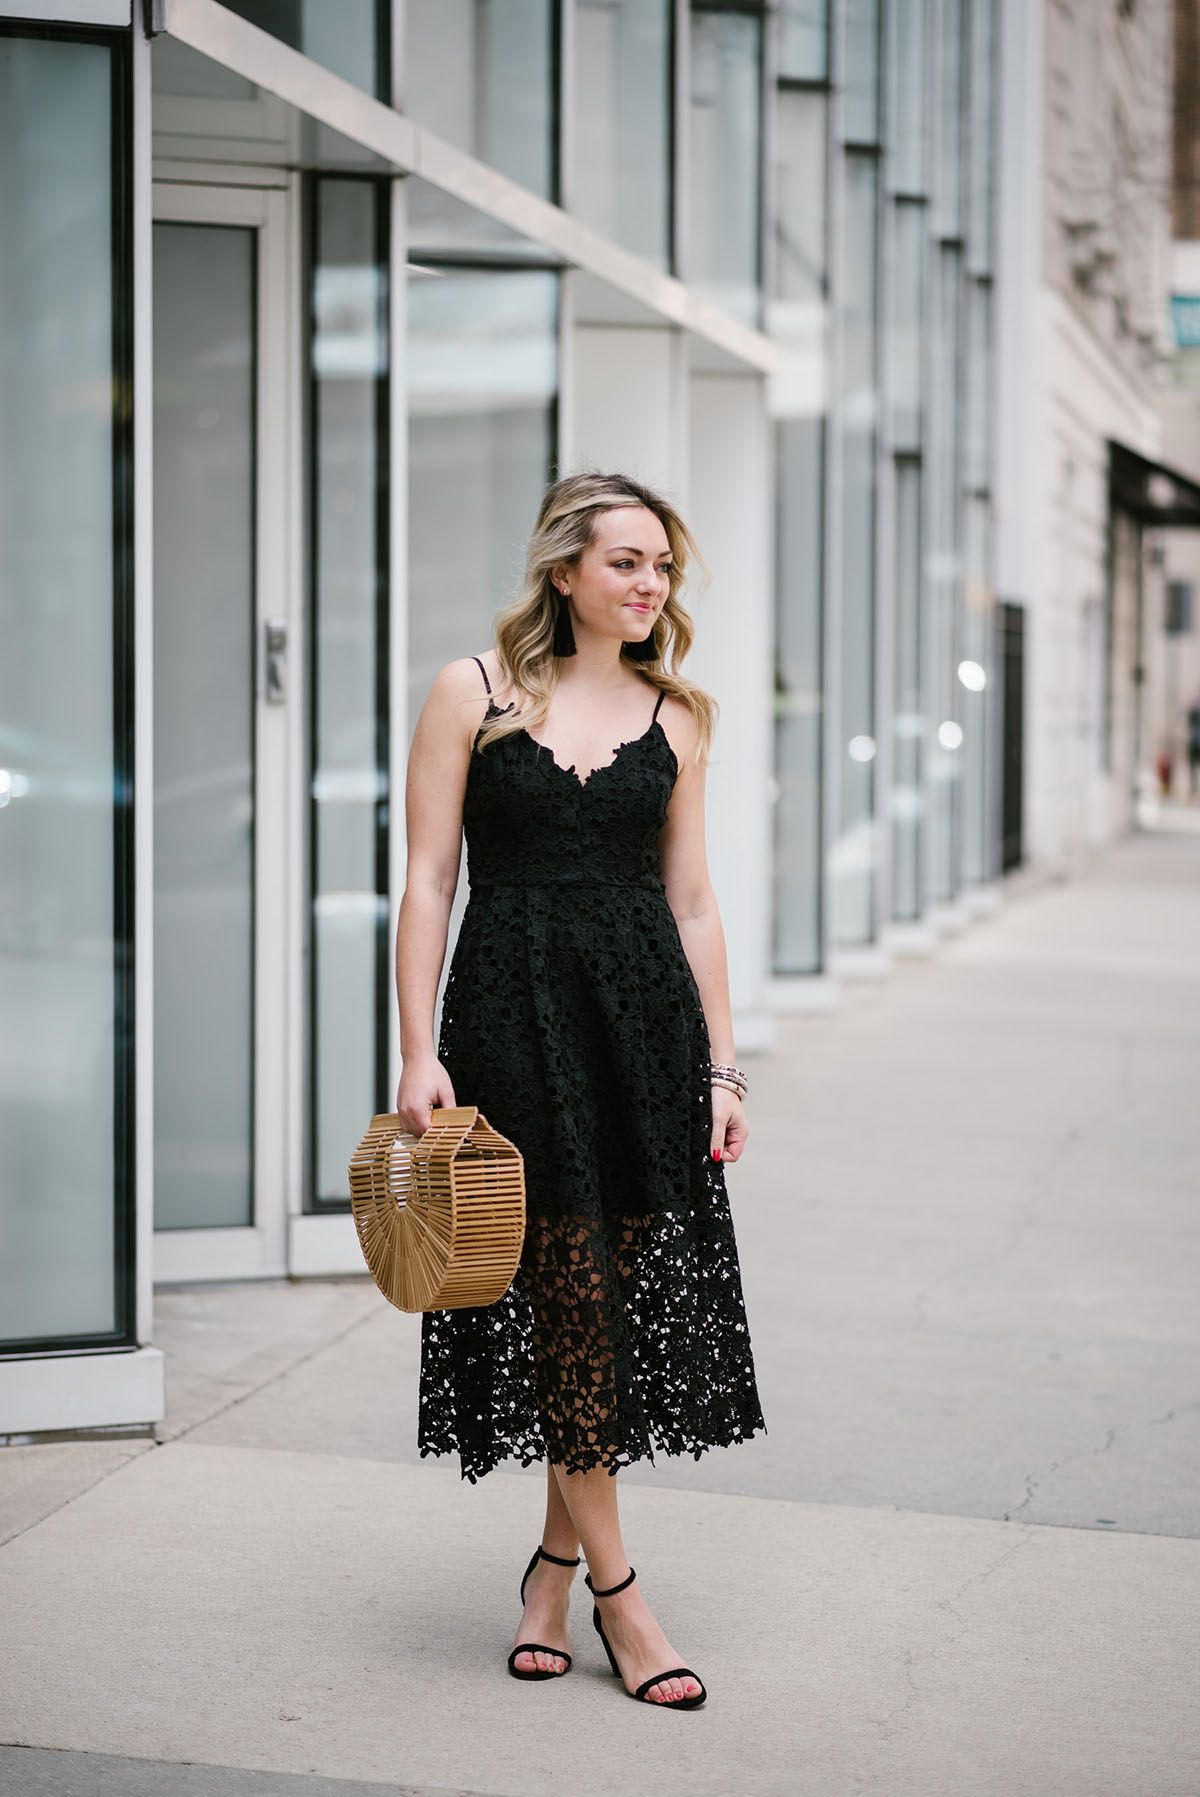 Bows Sequins Wearing A Black Lace Dress With Fringe Tassel Earrings Black Lace Midi Dress Lace Summer Dresses Wedding Guest Dress Summer